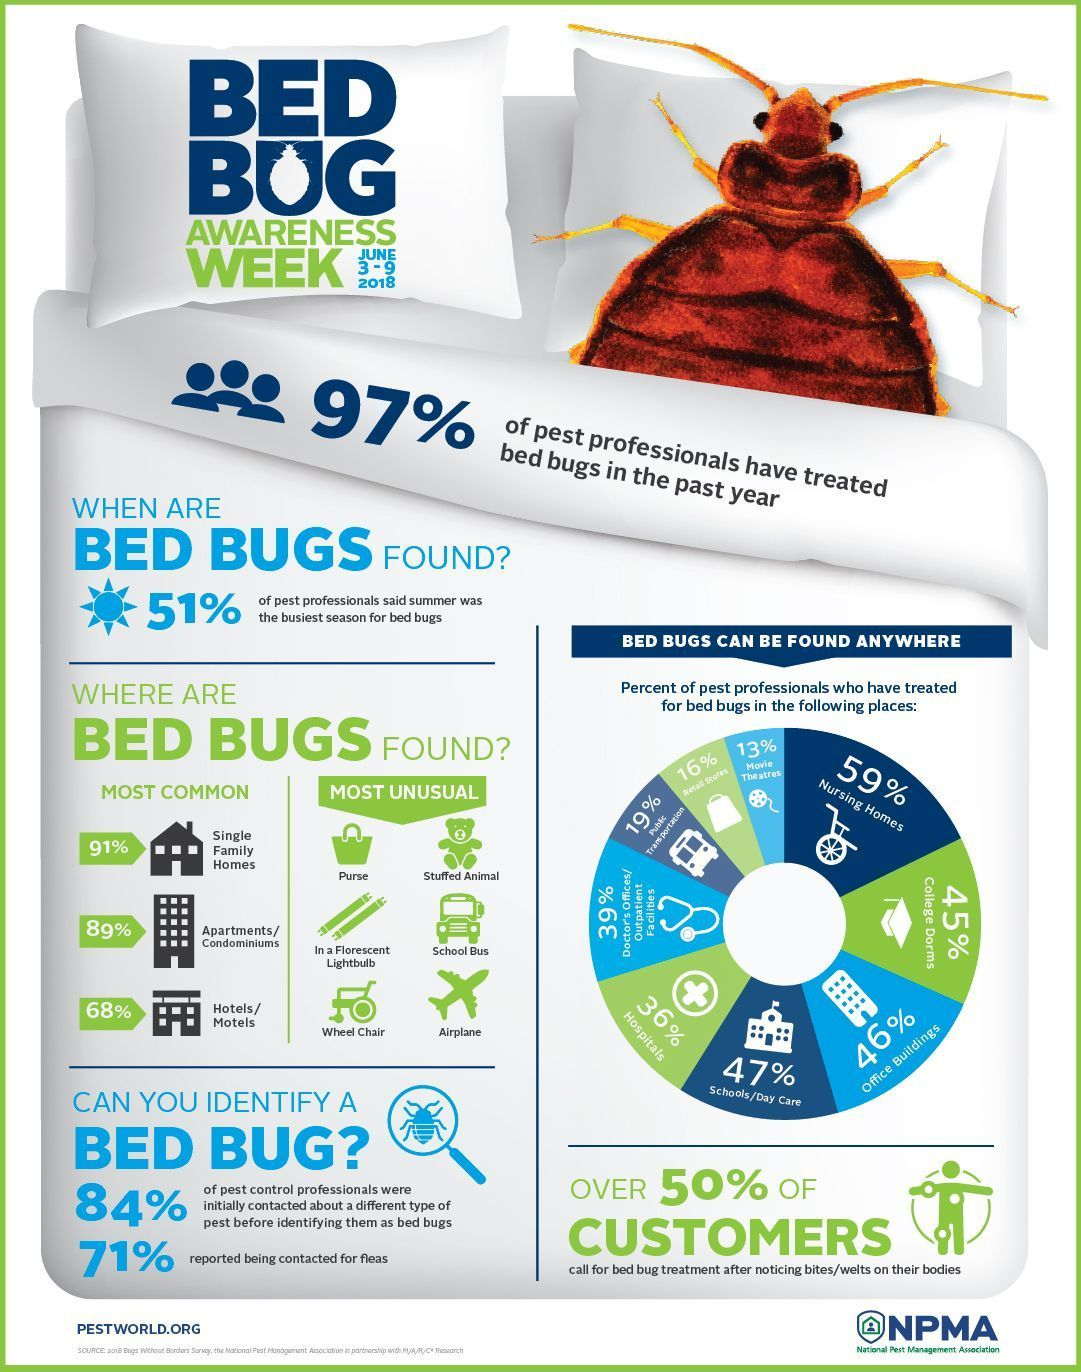 Pest Control Professionals See Summer Spike in Bed Bug